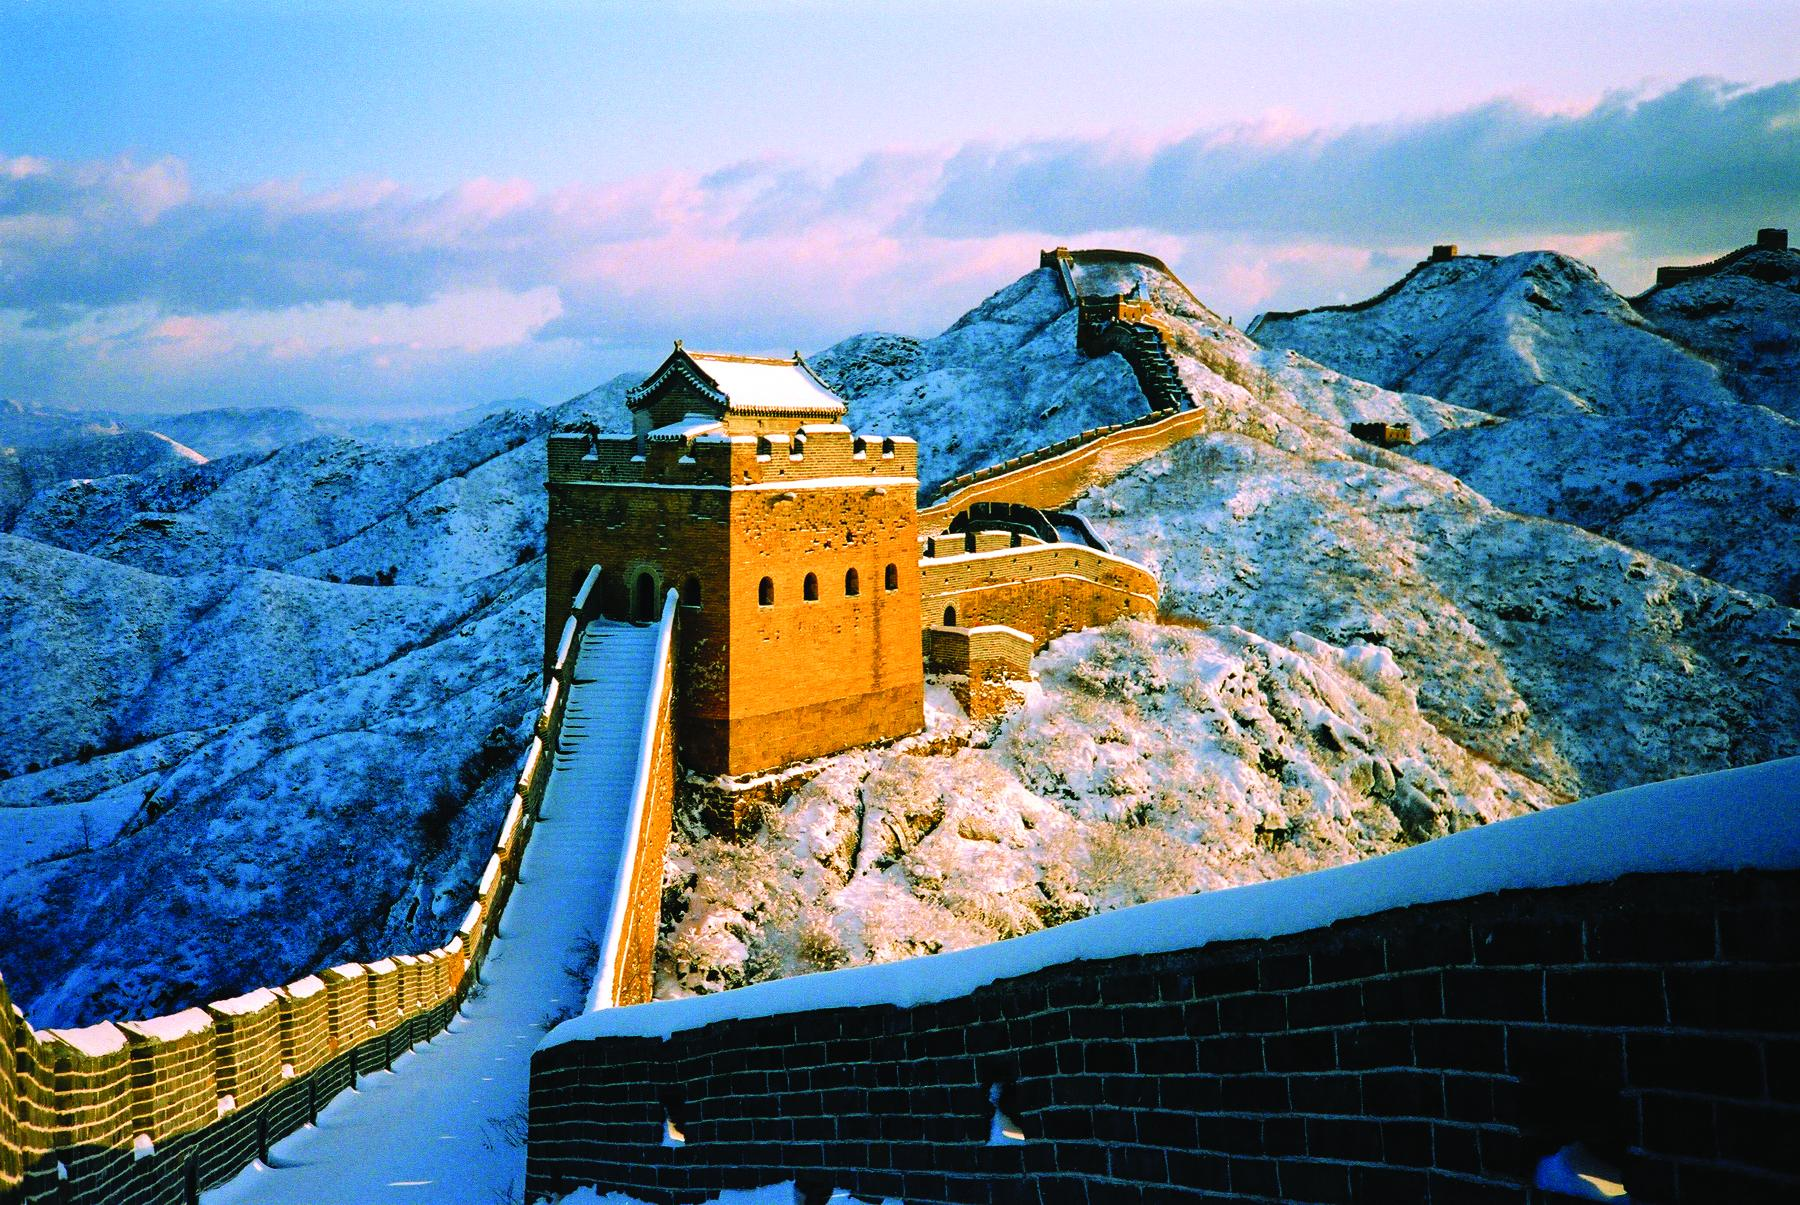 Great Wall of China: 5 ways to see one of the great modern wonders while avoiding the crowds